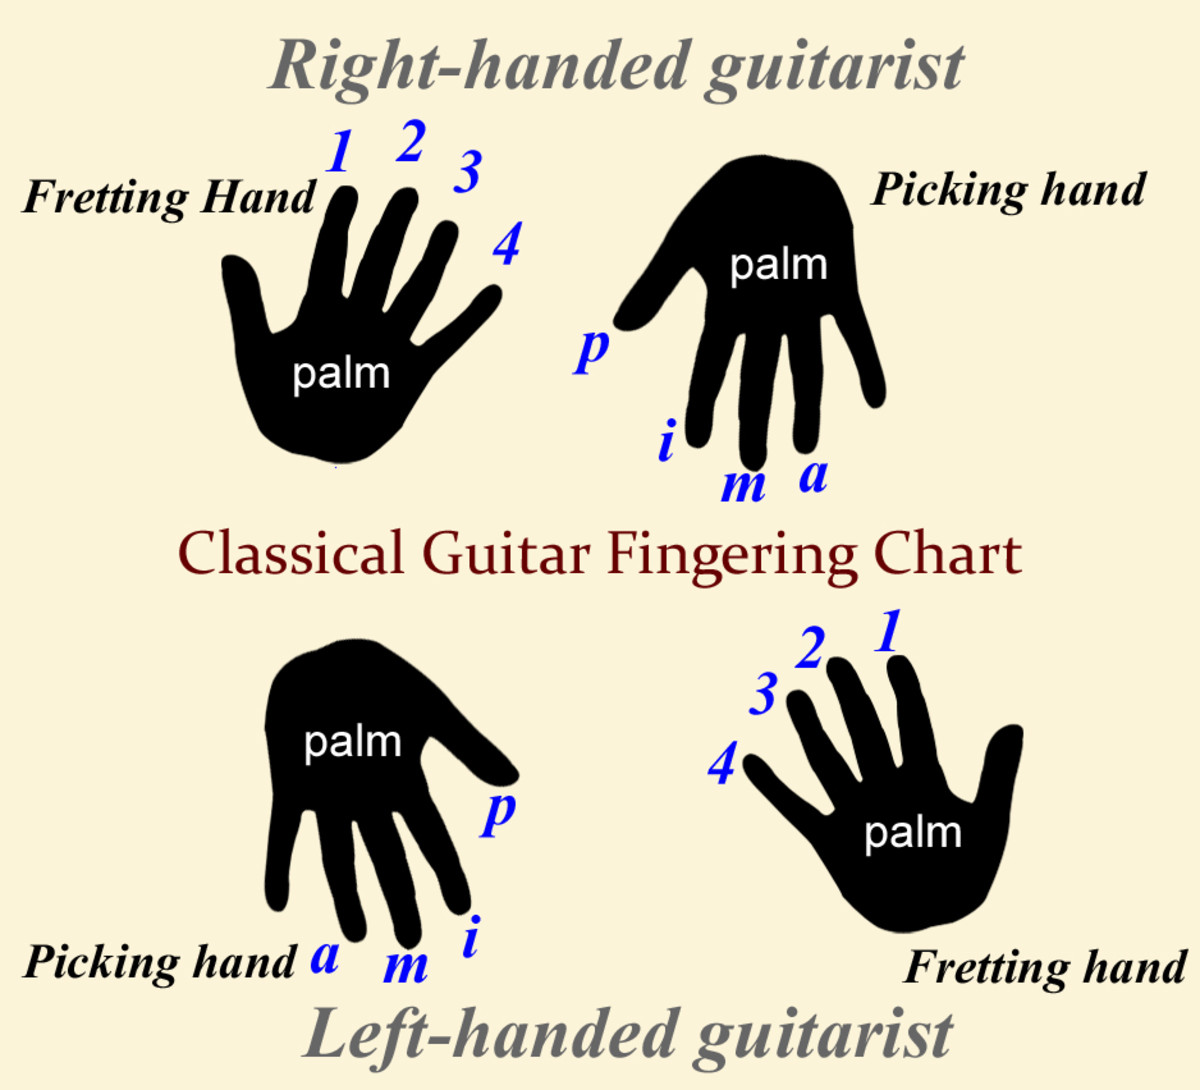 Classical guitar fingering chart